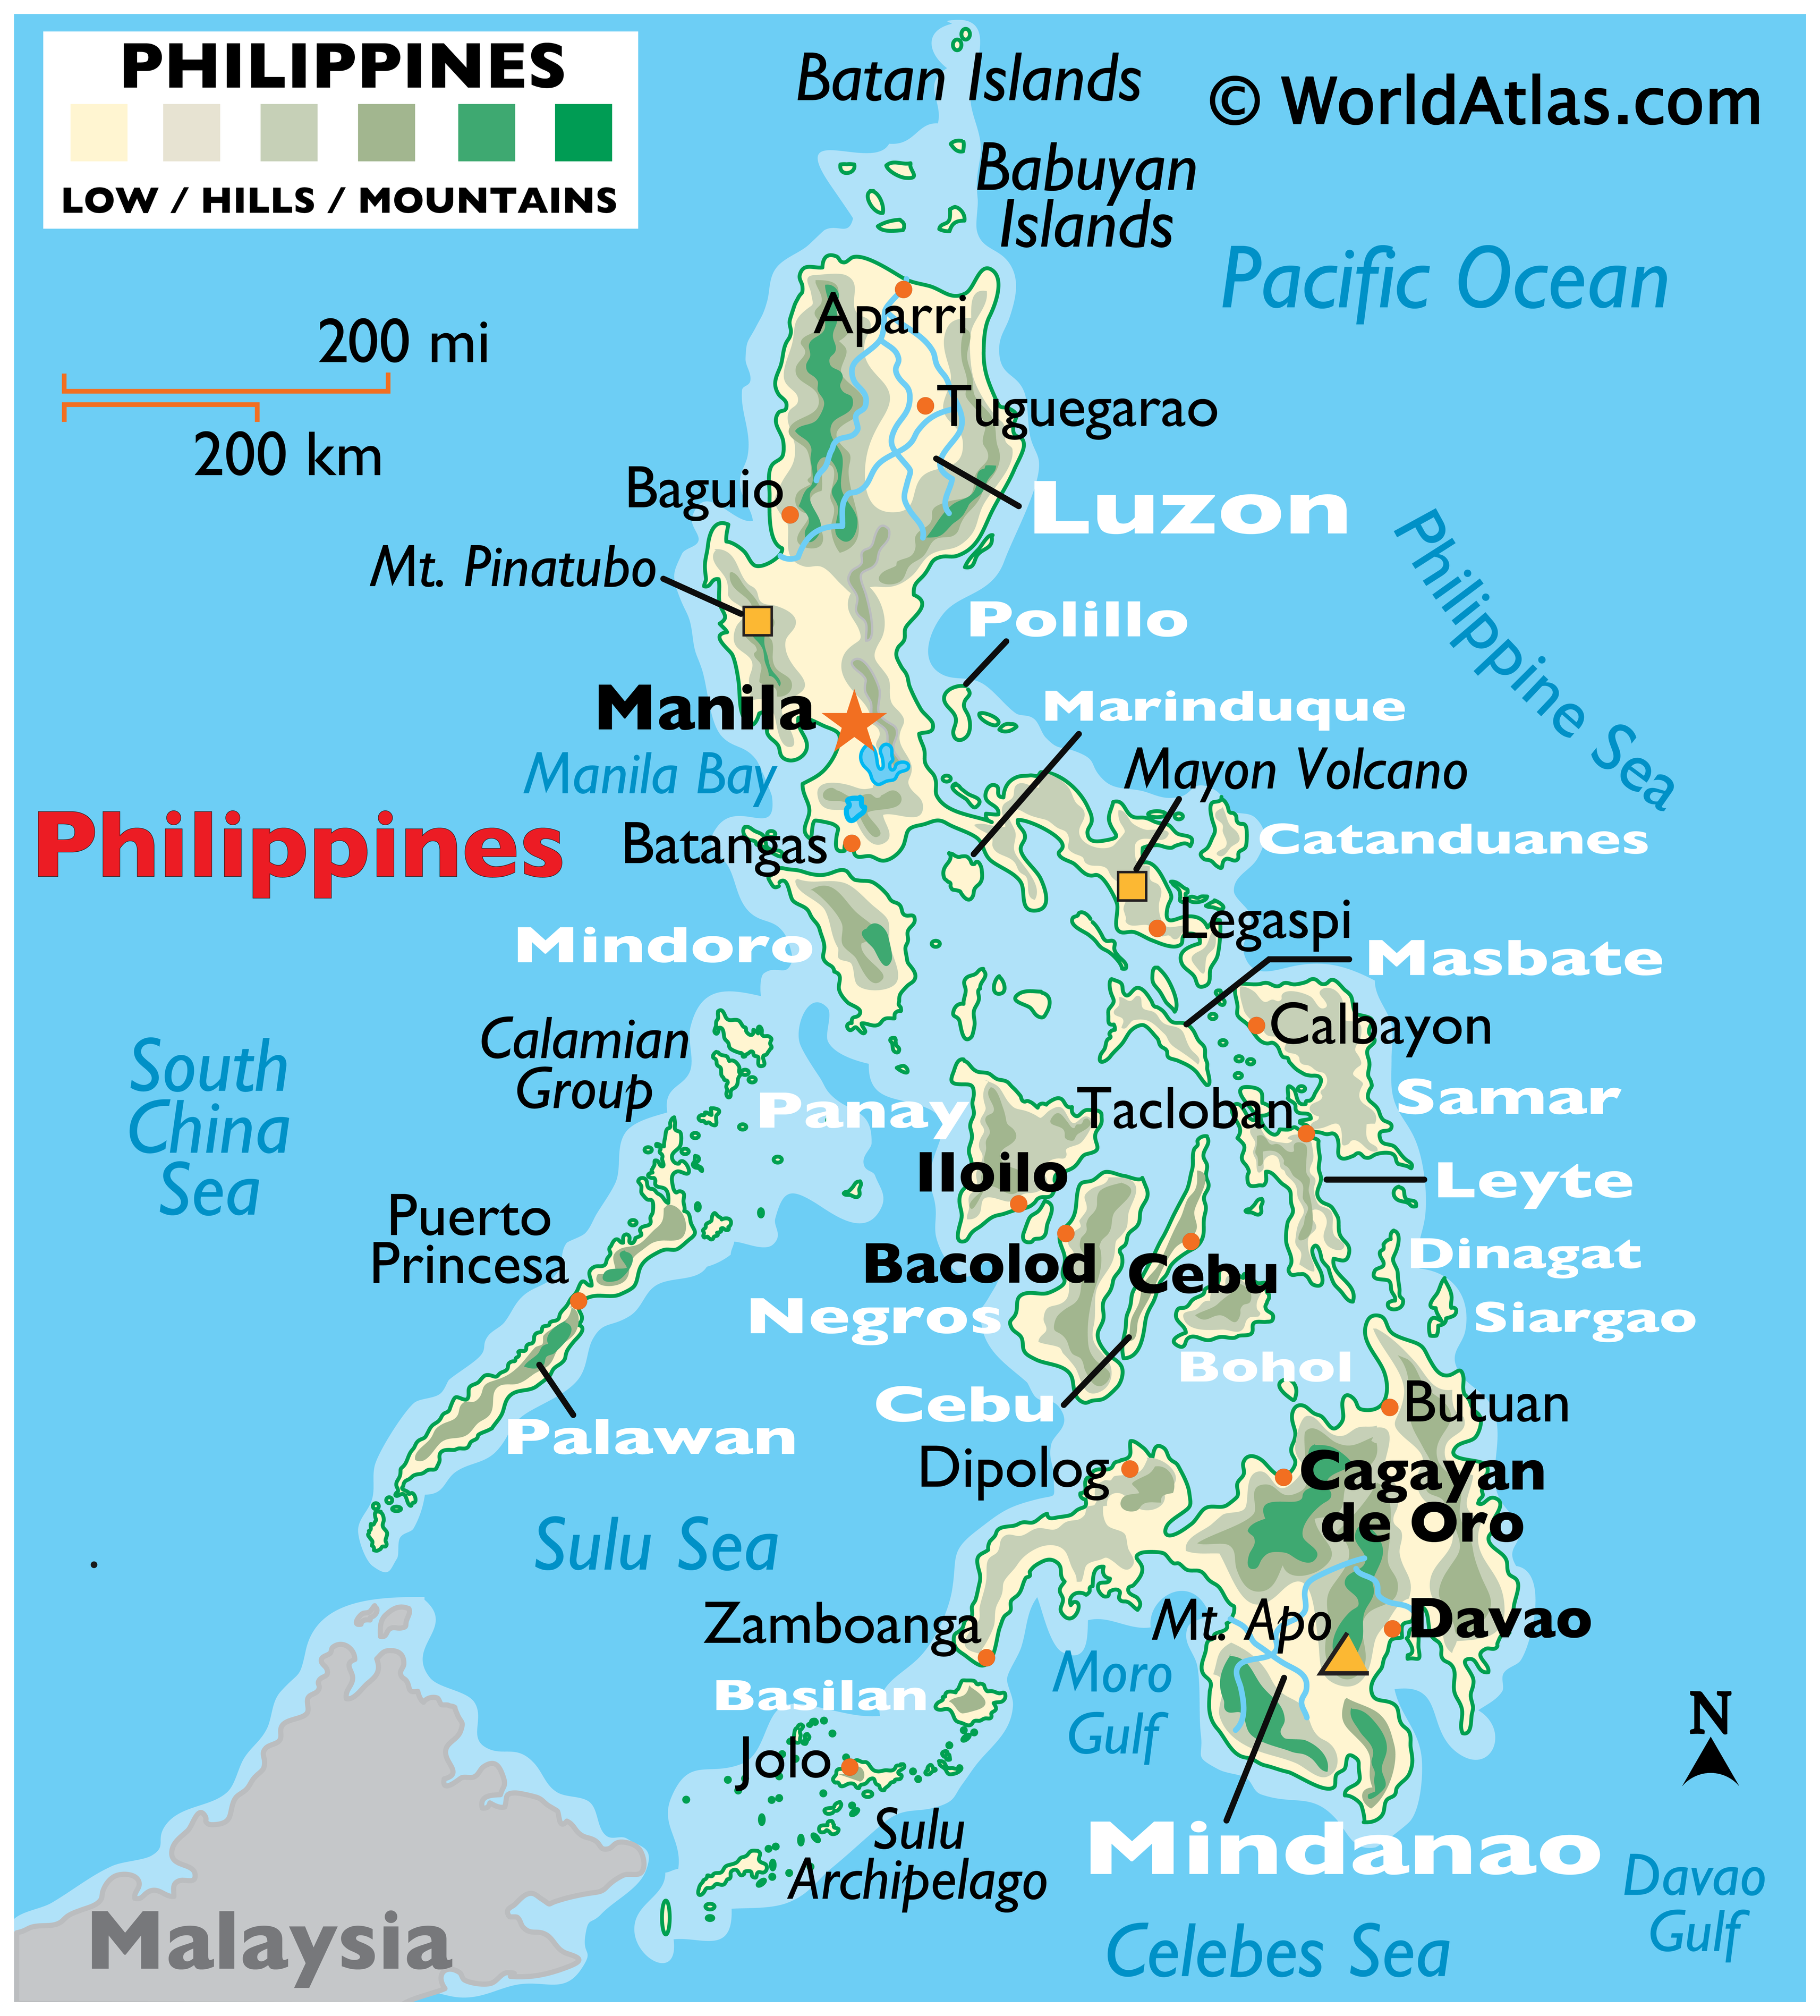 Physical map of the Philippines with provincial boundaries. It shows the physical features of Philippines including elevation, vegetation, and major rivers.